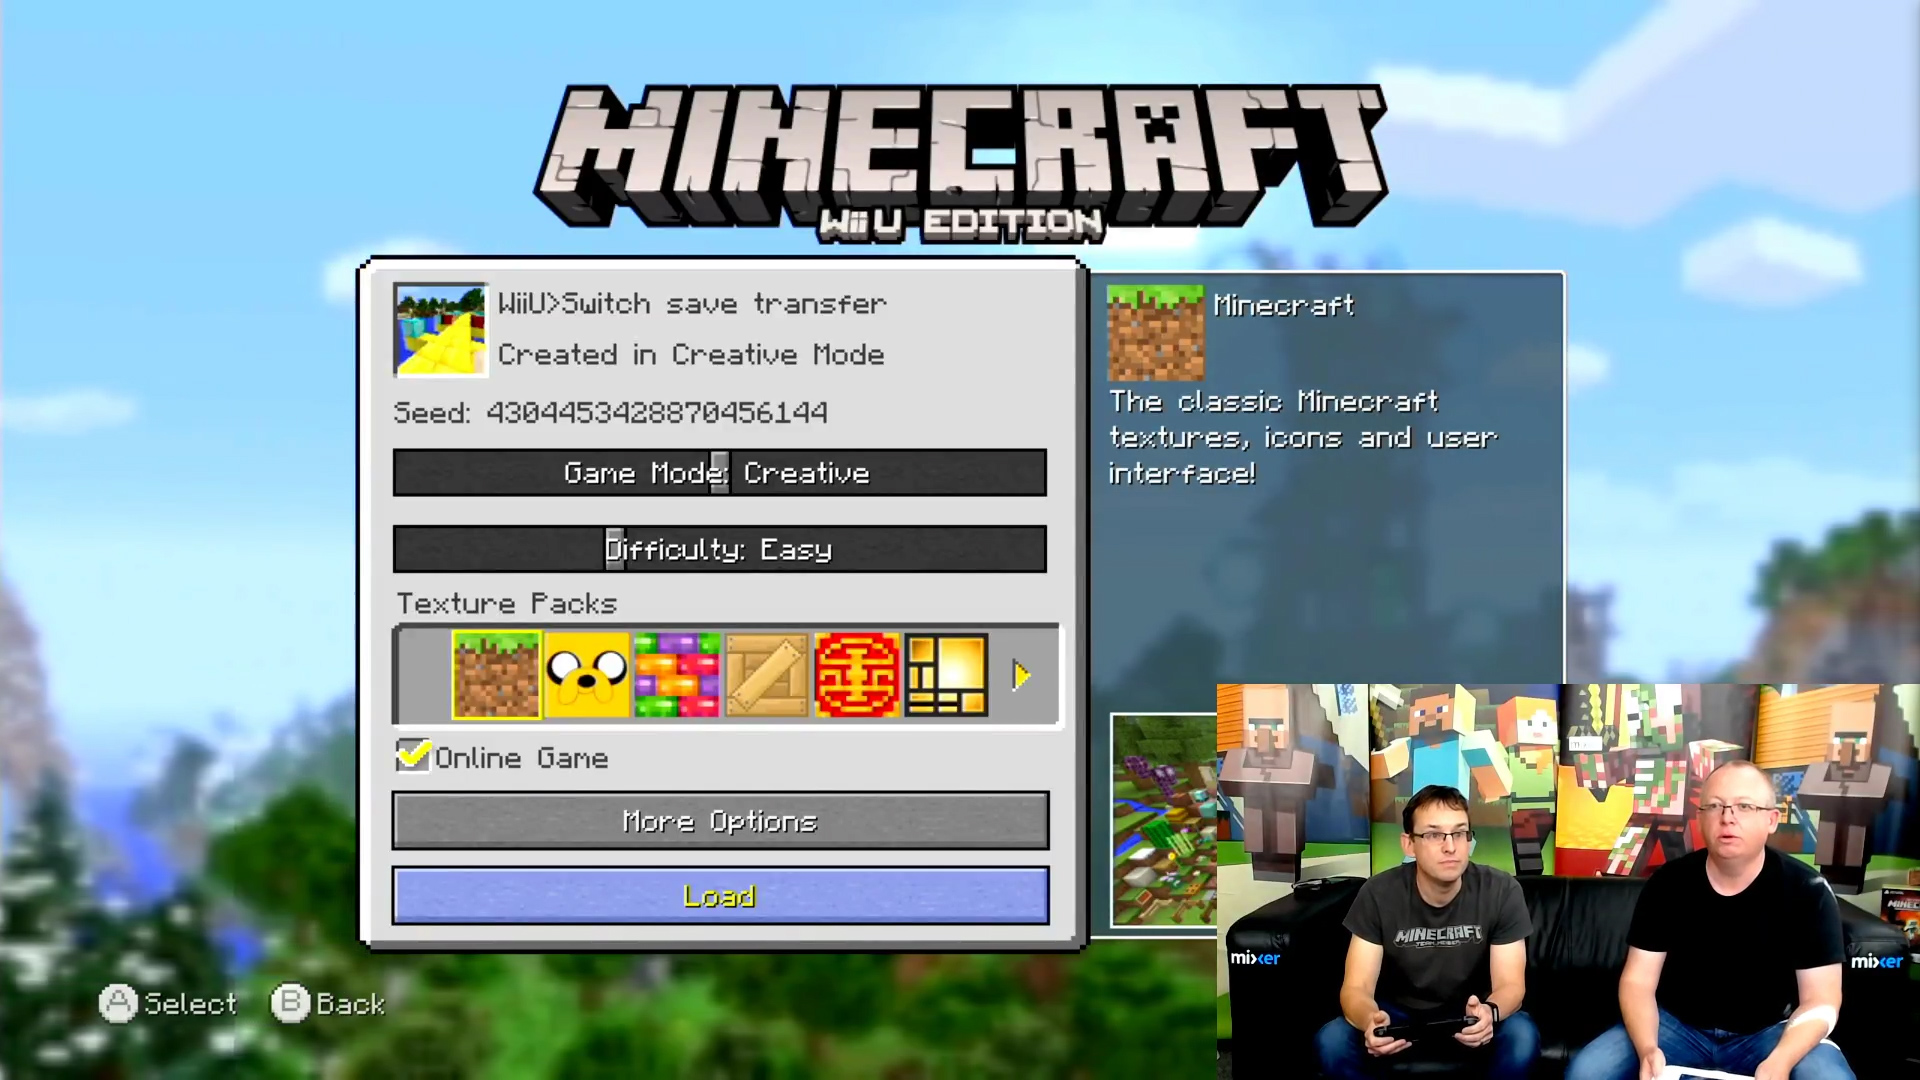 Minecraft will soon let you transfer saves from Wii U to Switch screenshot